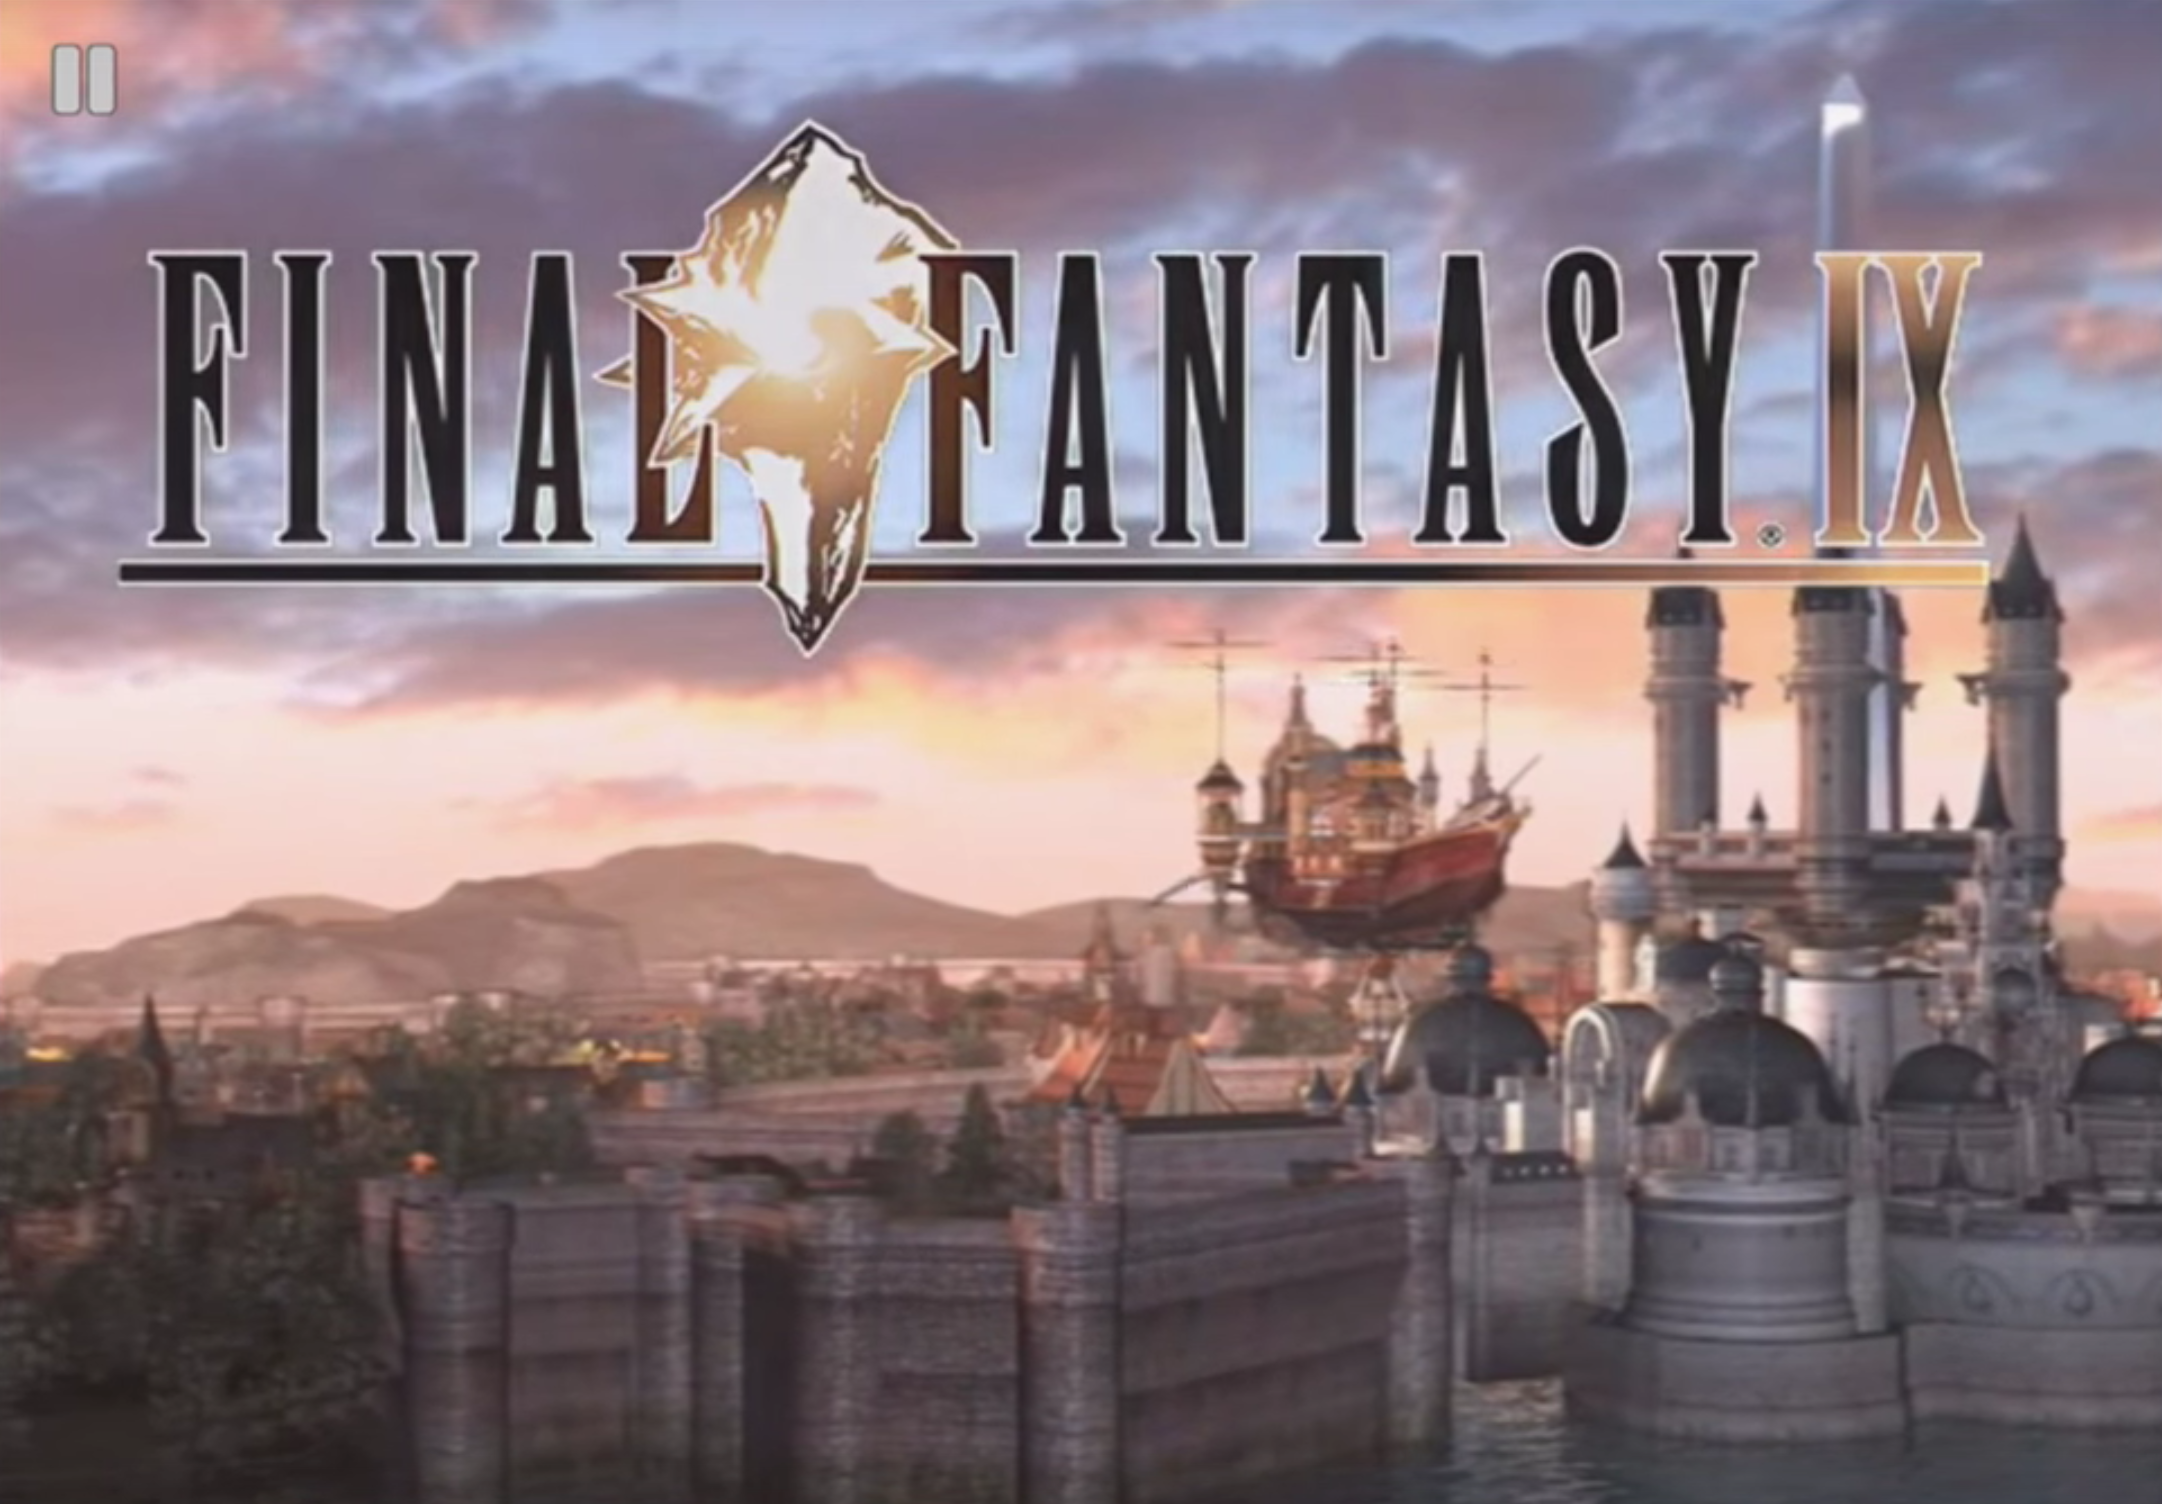 Final-Fantasy-IX-9-title-screen-Android-